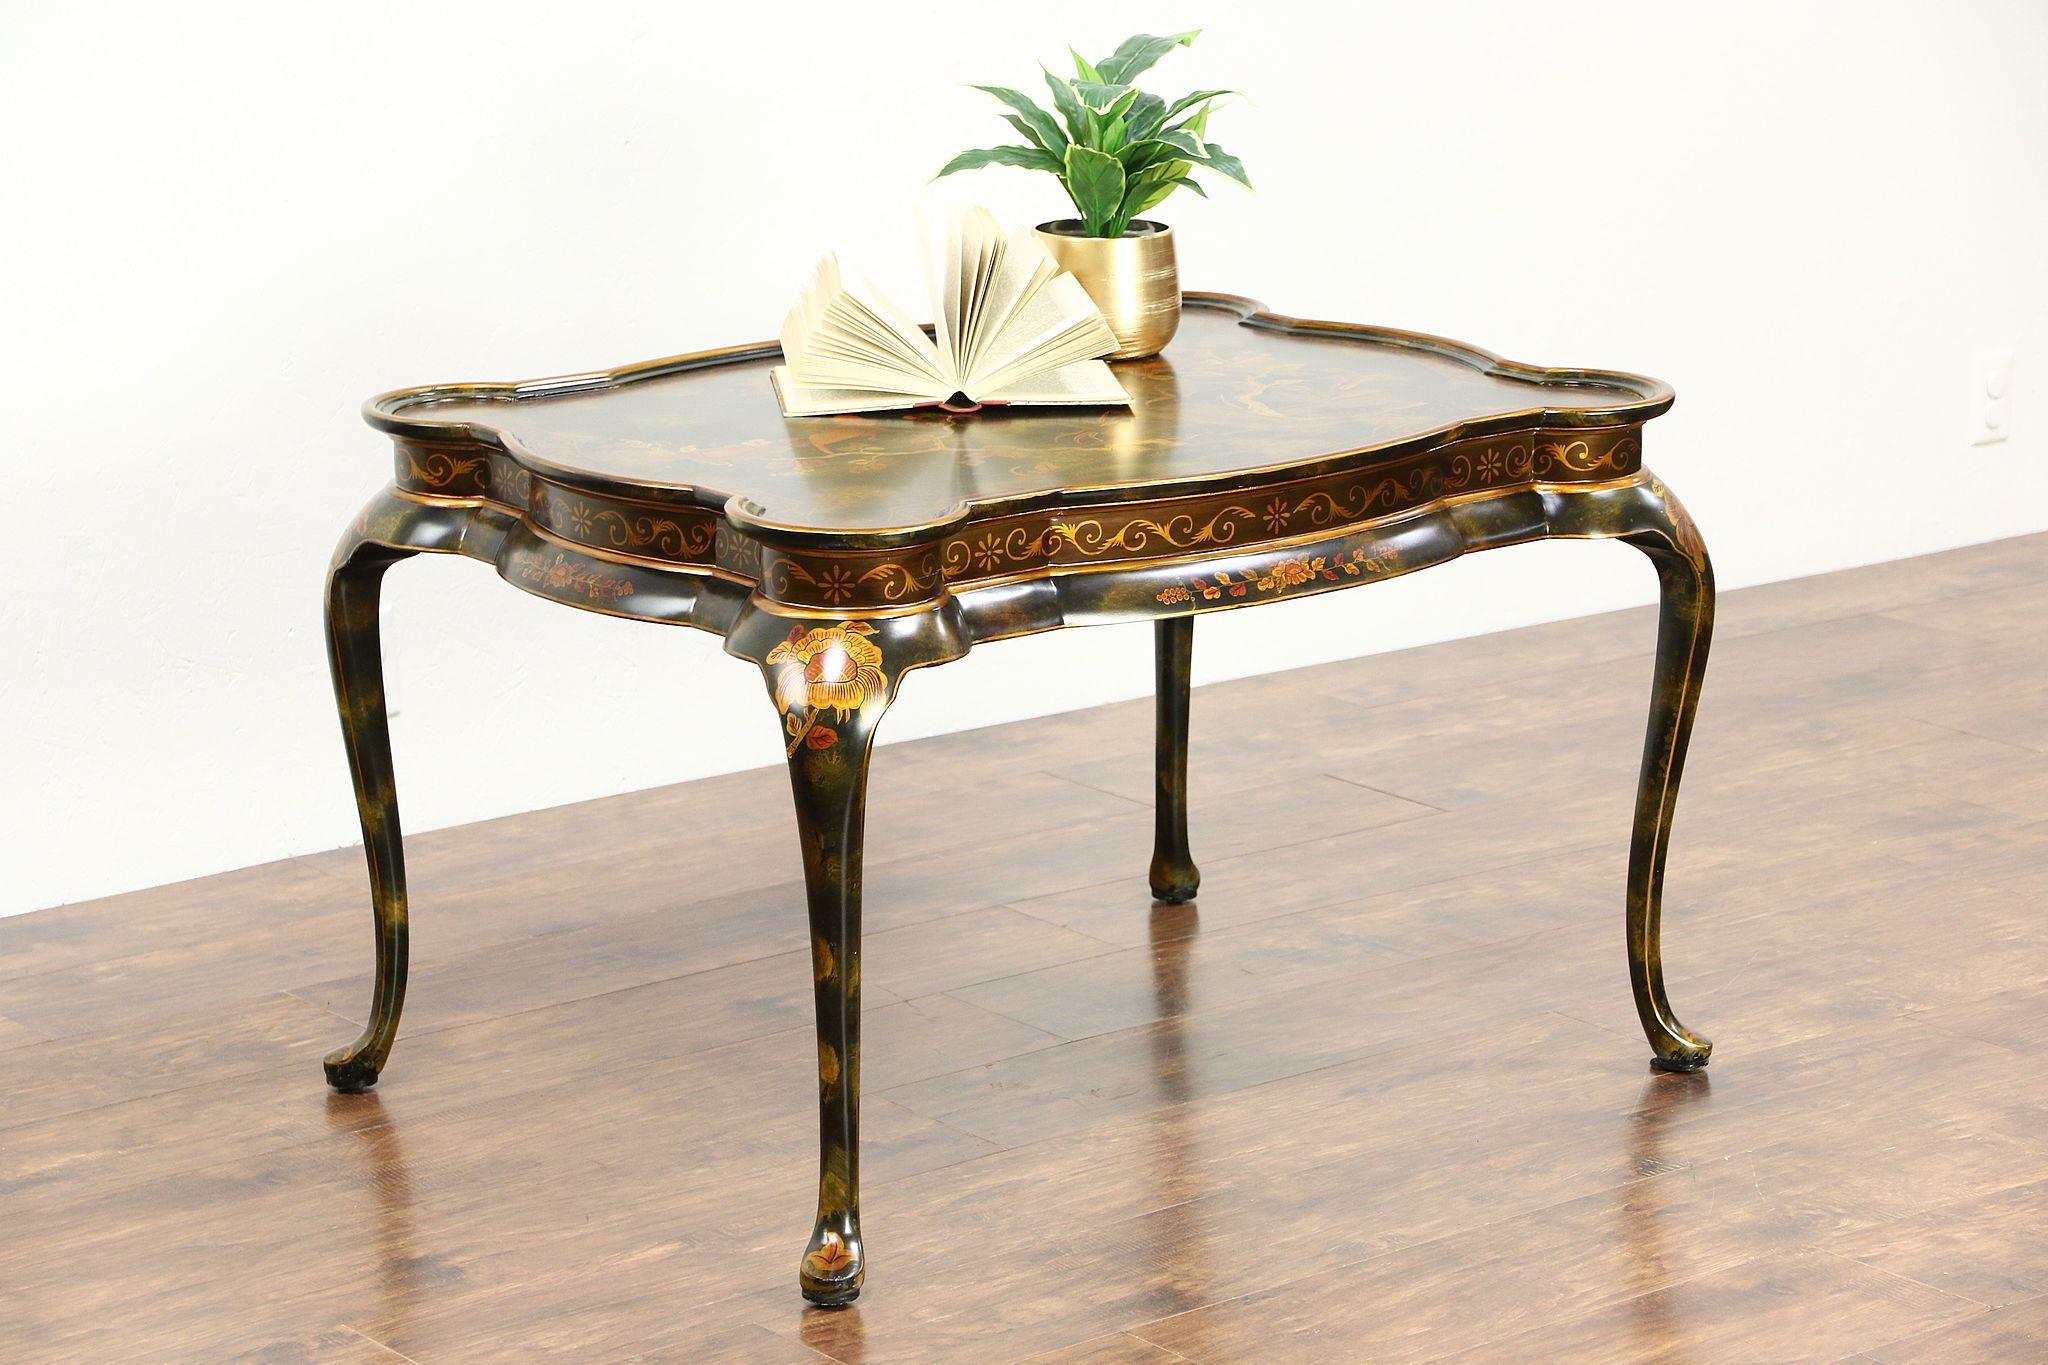 High Quality Maitland Smith Signed Tea, Coffee Or Cocktail Table, Chinoiserie Painting